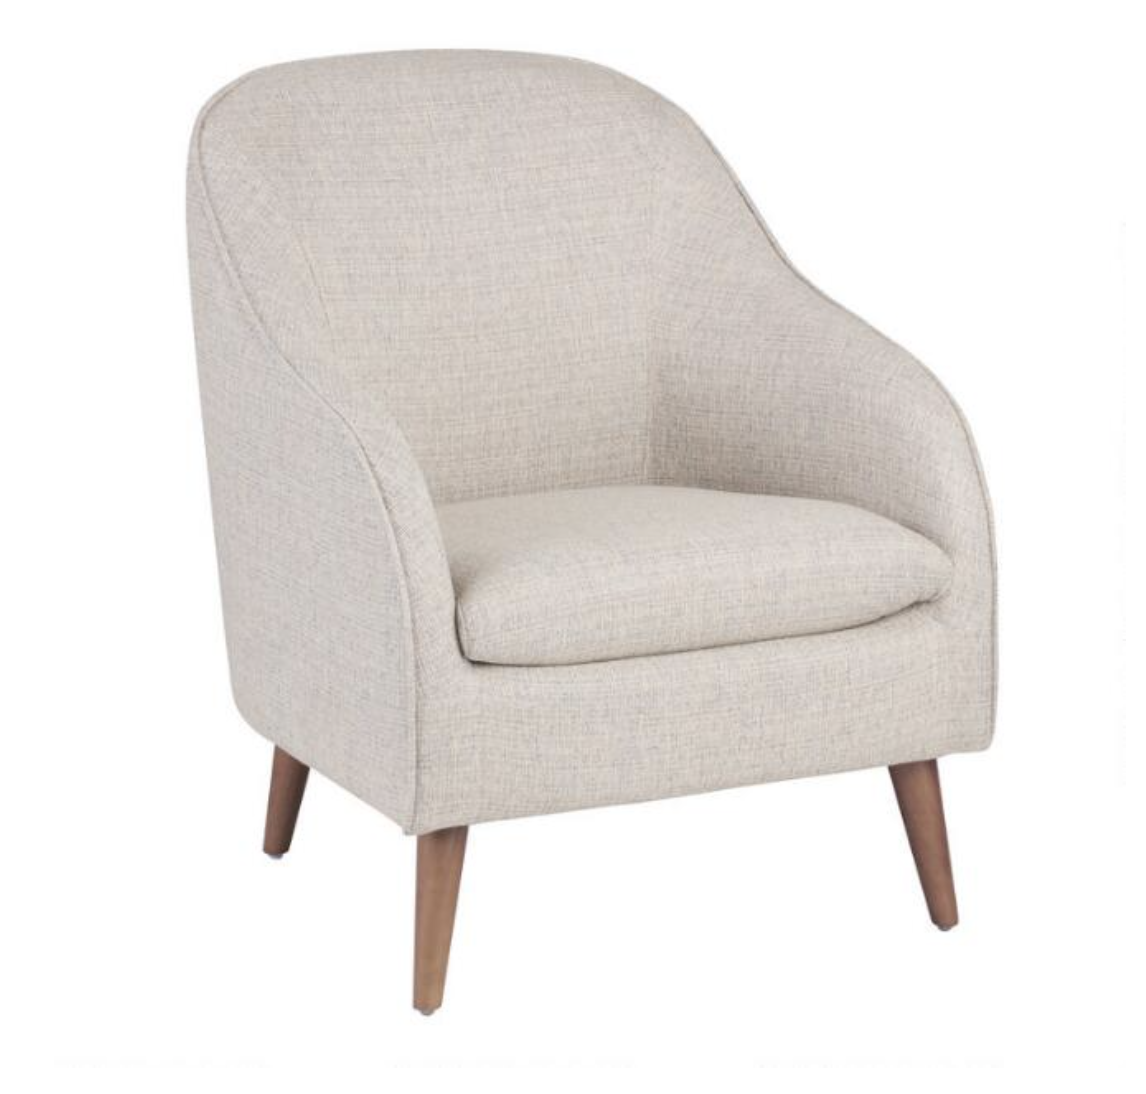 Morris Natural Linen Chair